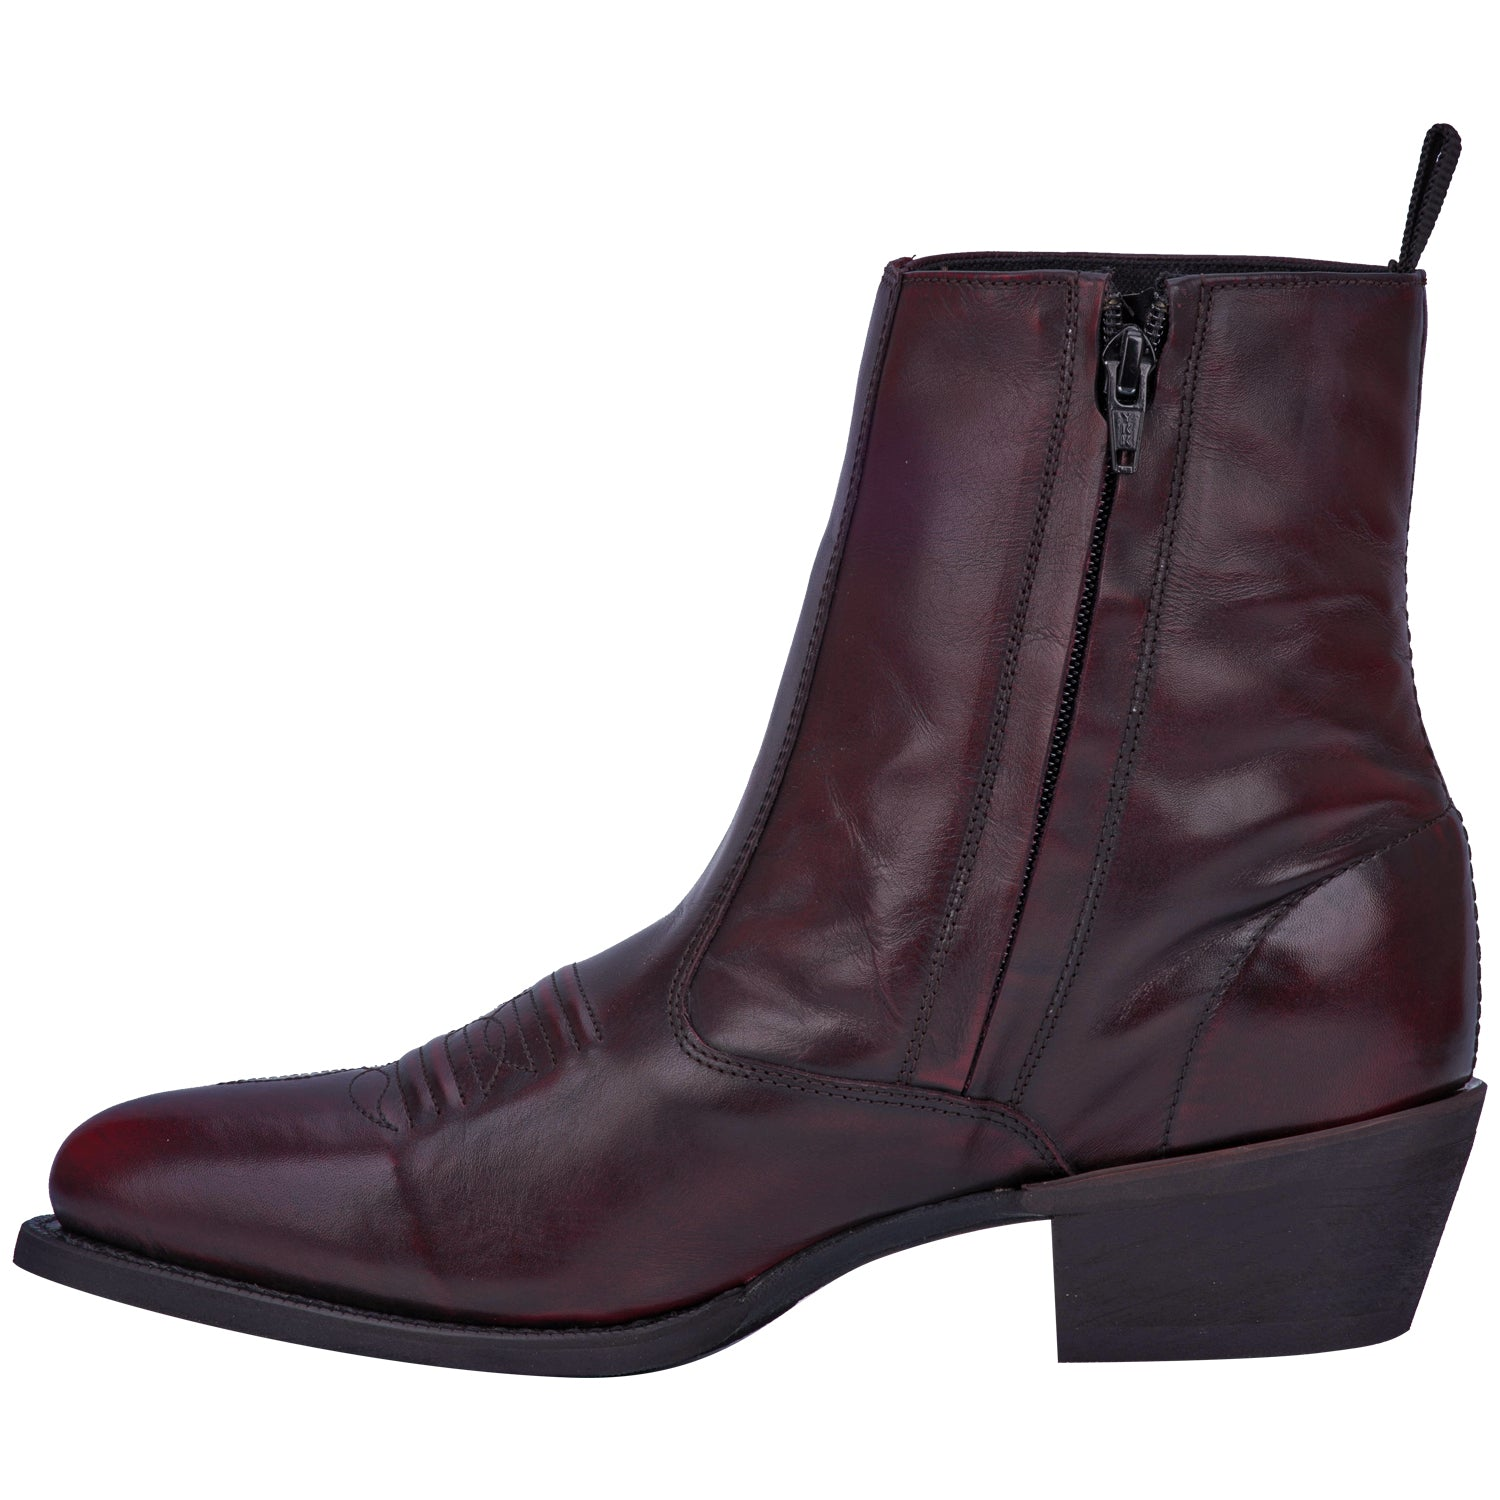 FLETCHER LEATHER BOOT 5789493559338